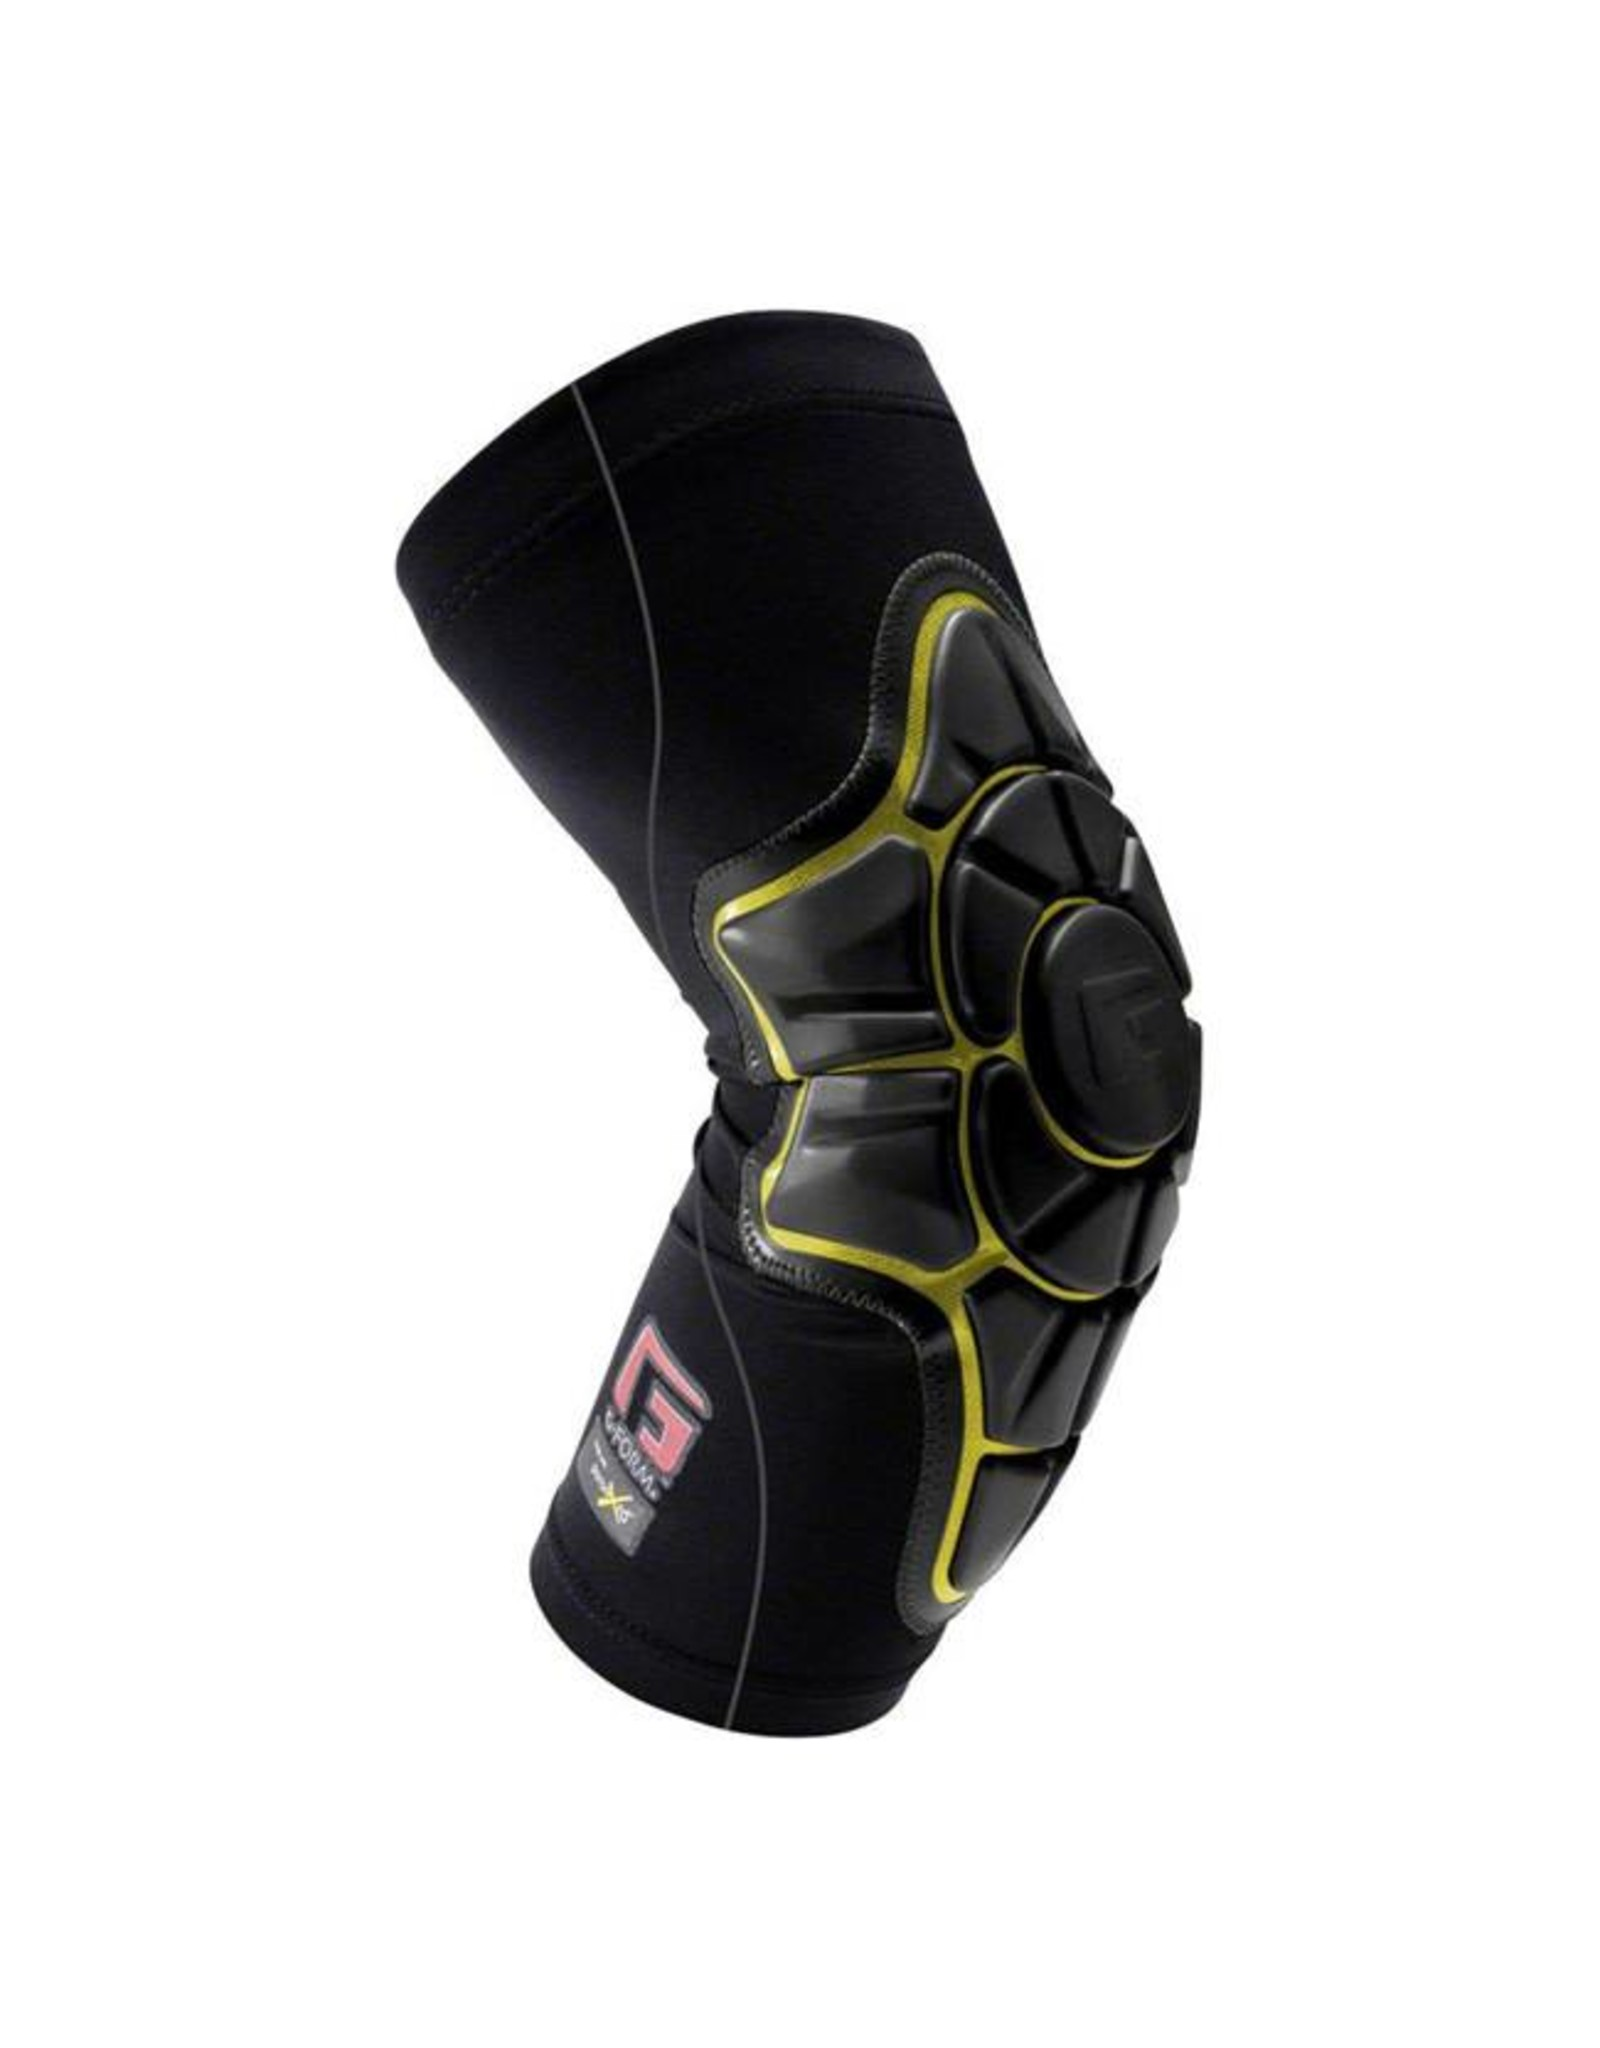 G-Form G-Form Pro-X Elbow Pad: Black/Yellow MD